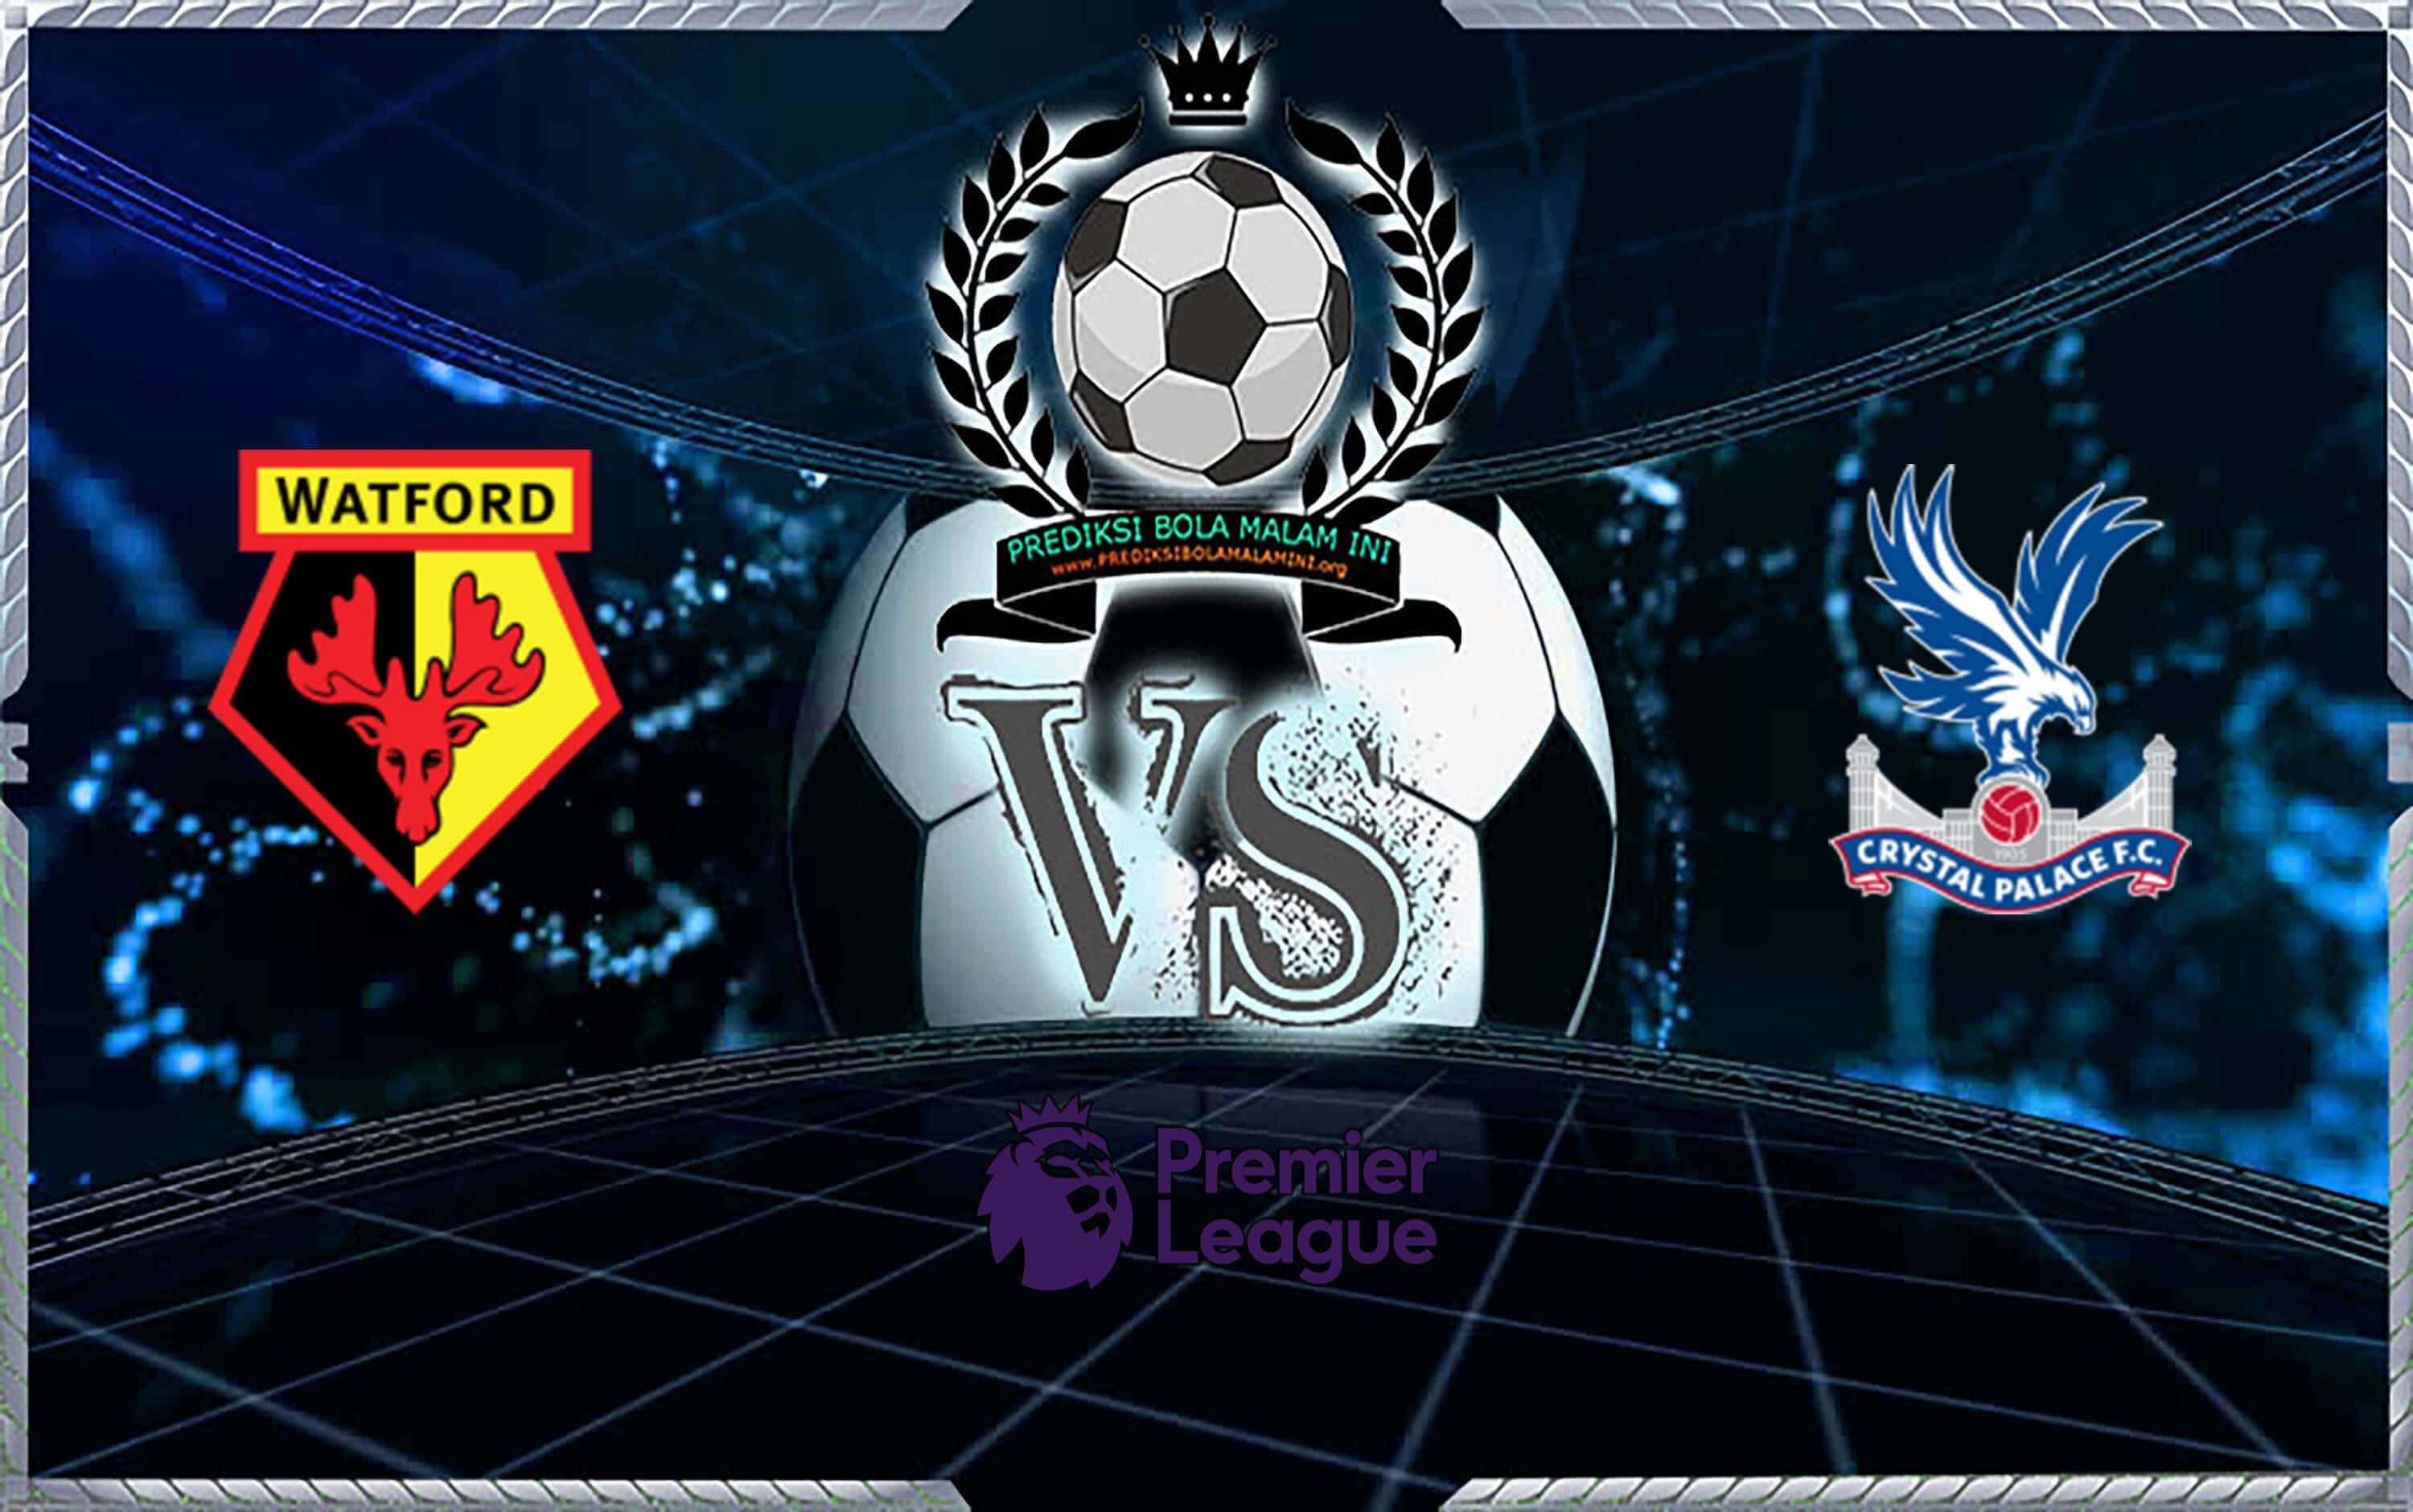 "Prediksi Skor Watford Vs Crystal Palace 7 Desember 2019 ""width ="" 3000 ""height ="" 1880 ""/> </strong> </p> <p> <span style="